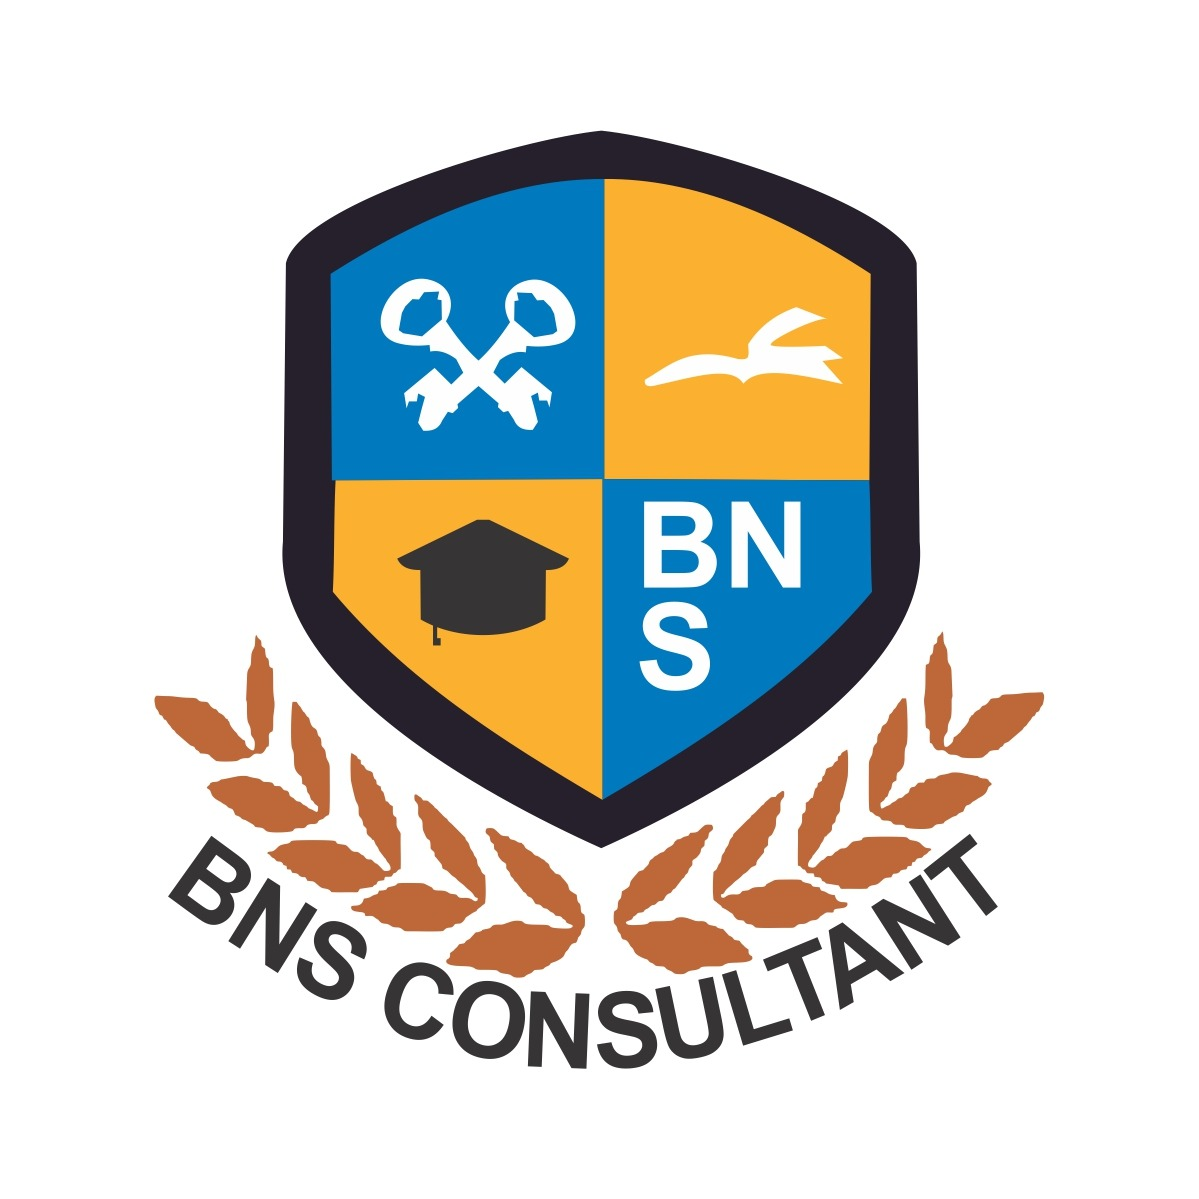 https://www.studyabroad.pk/images/companyLogo/Manager - RecruitmentBNS LOGO.jpeg